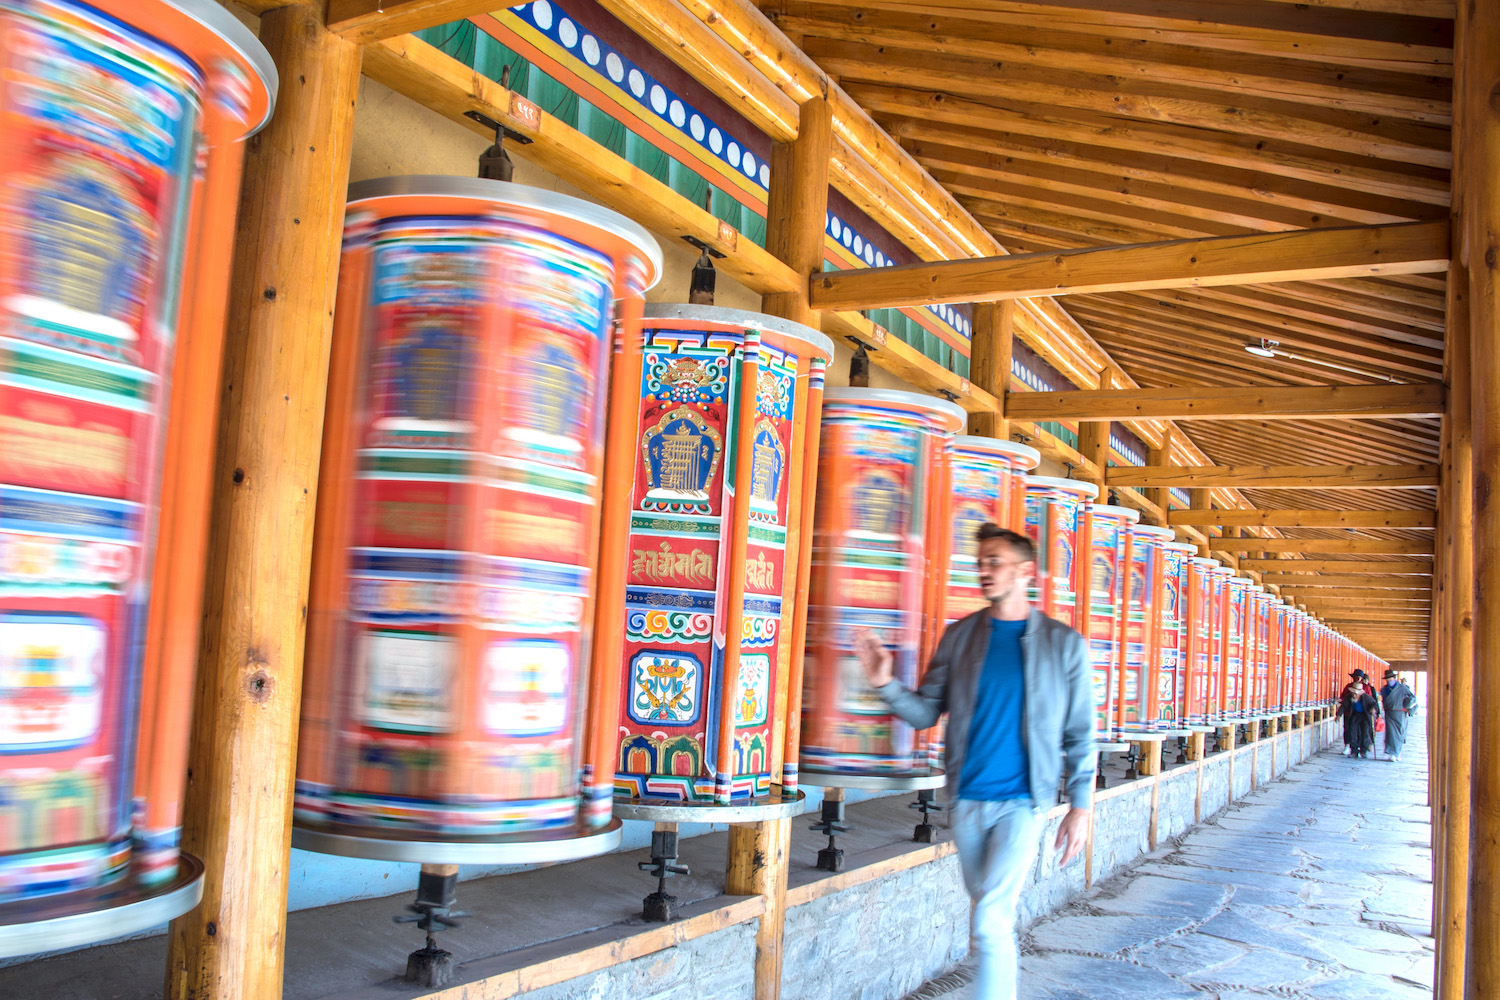 Labrang Monastery in Xiahe, Gansu, China